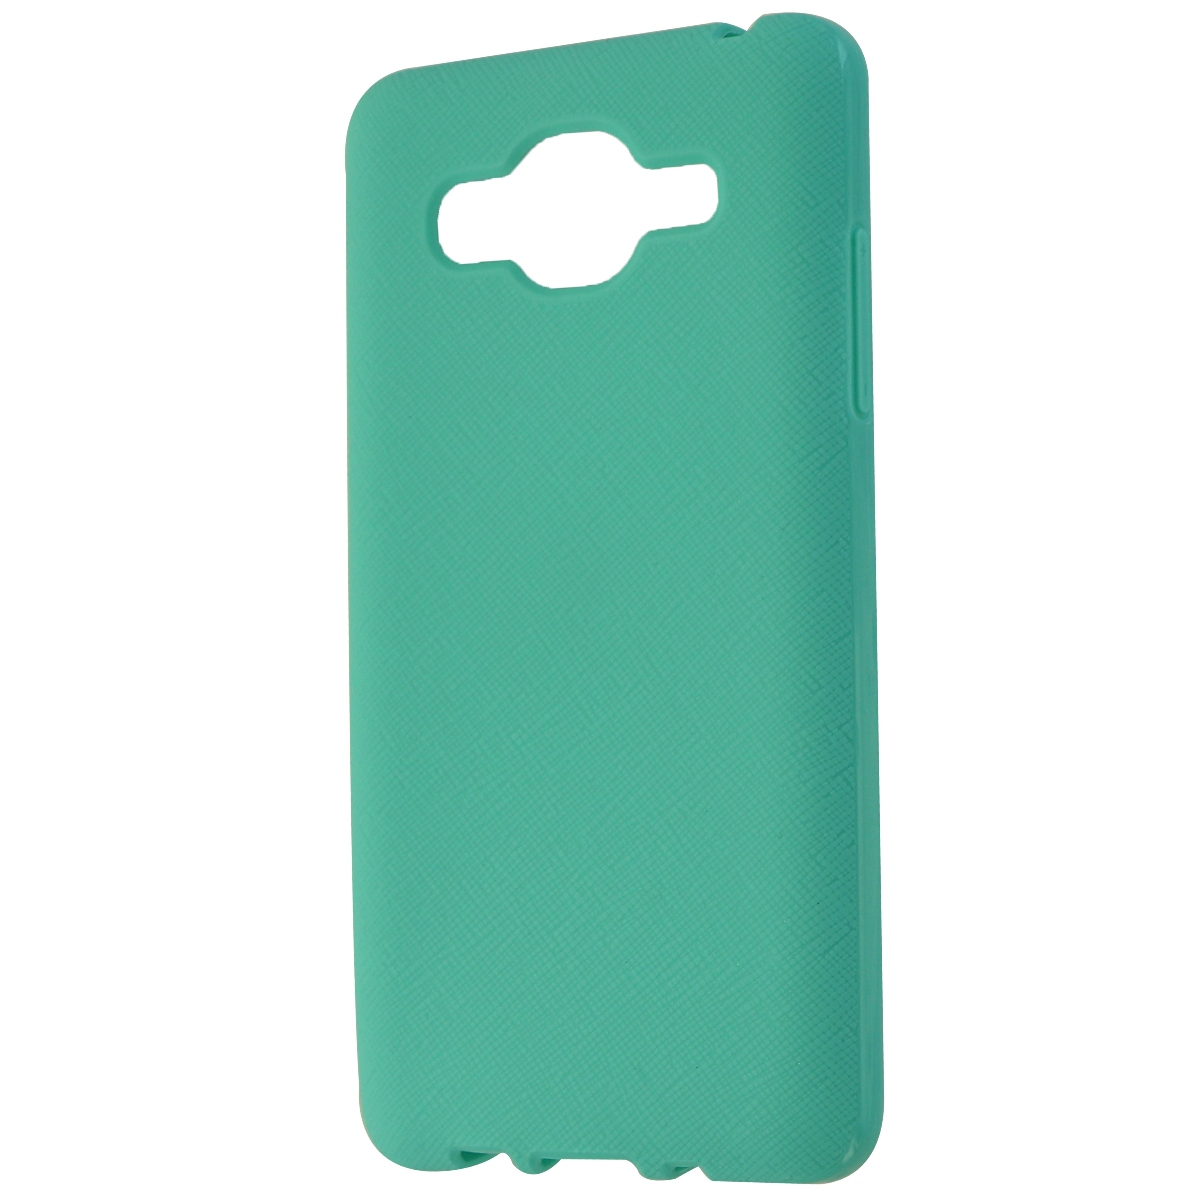 T-Mobile Flexx Protective Cover Series Case for Samsung Galaxy On5 - Mint Green